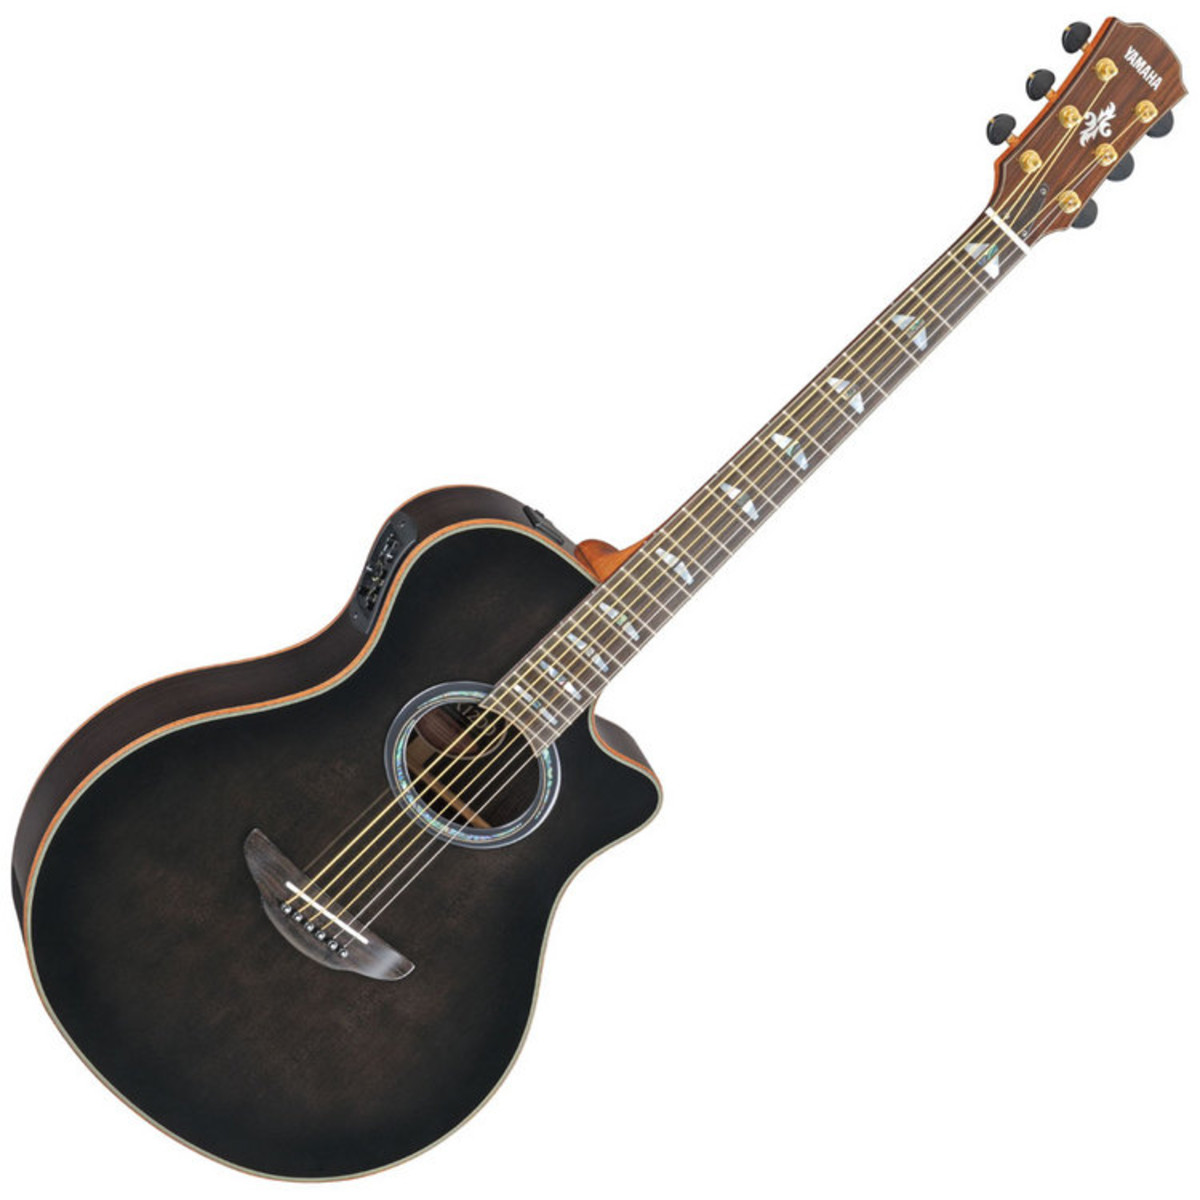 yamaha apx1200 electro acoustic guitar translucent black box opened at gear4music. Black Bedroom Furniture Sets. Home Design Ideas